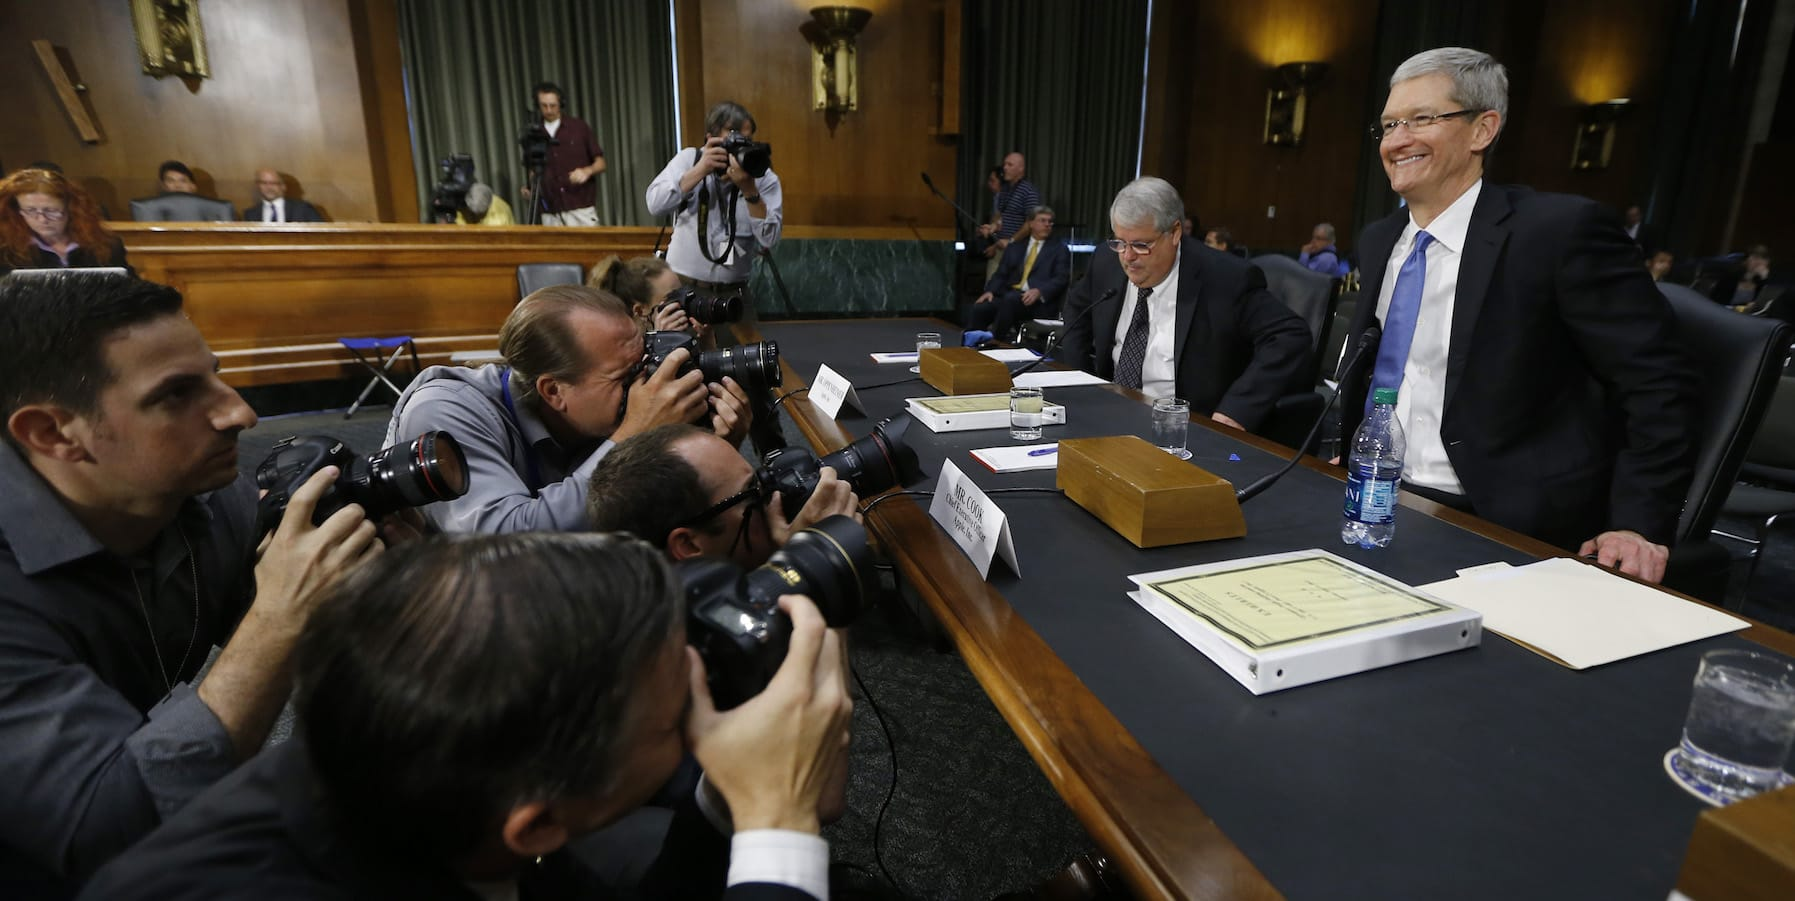 Tim Cook at a 2013 US Senate hearing on tax affairs